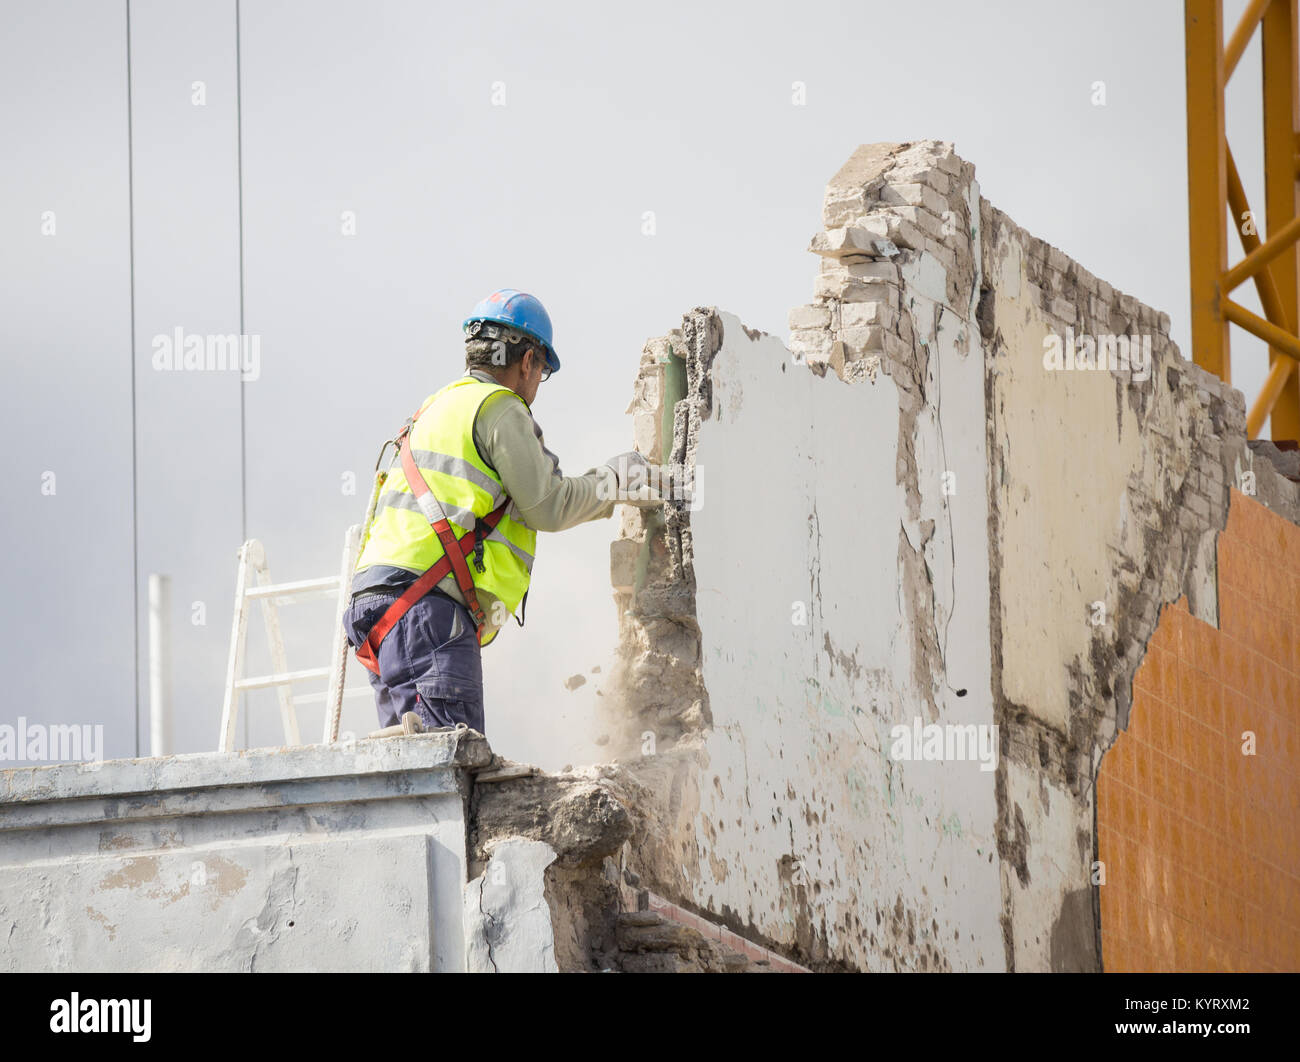 Workman demolishing wall on high building without safety harness being attached. - Stock Image